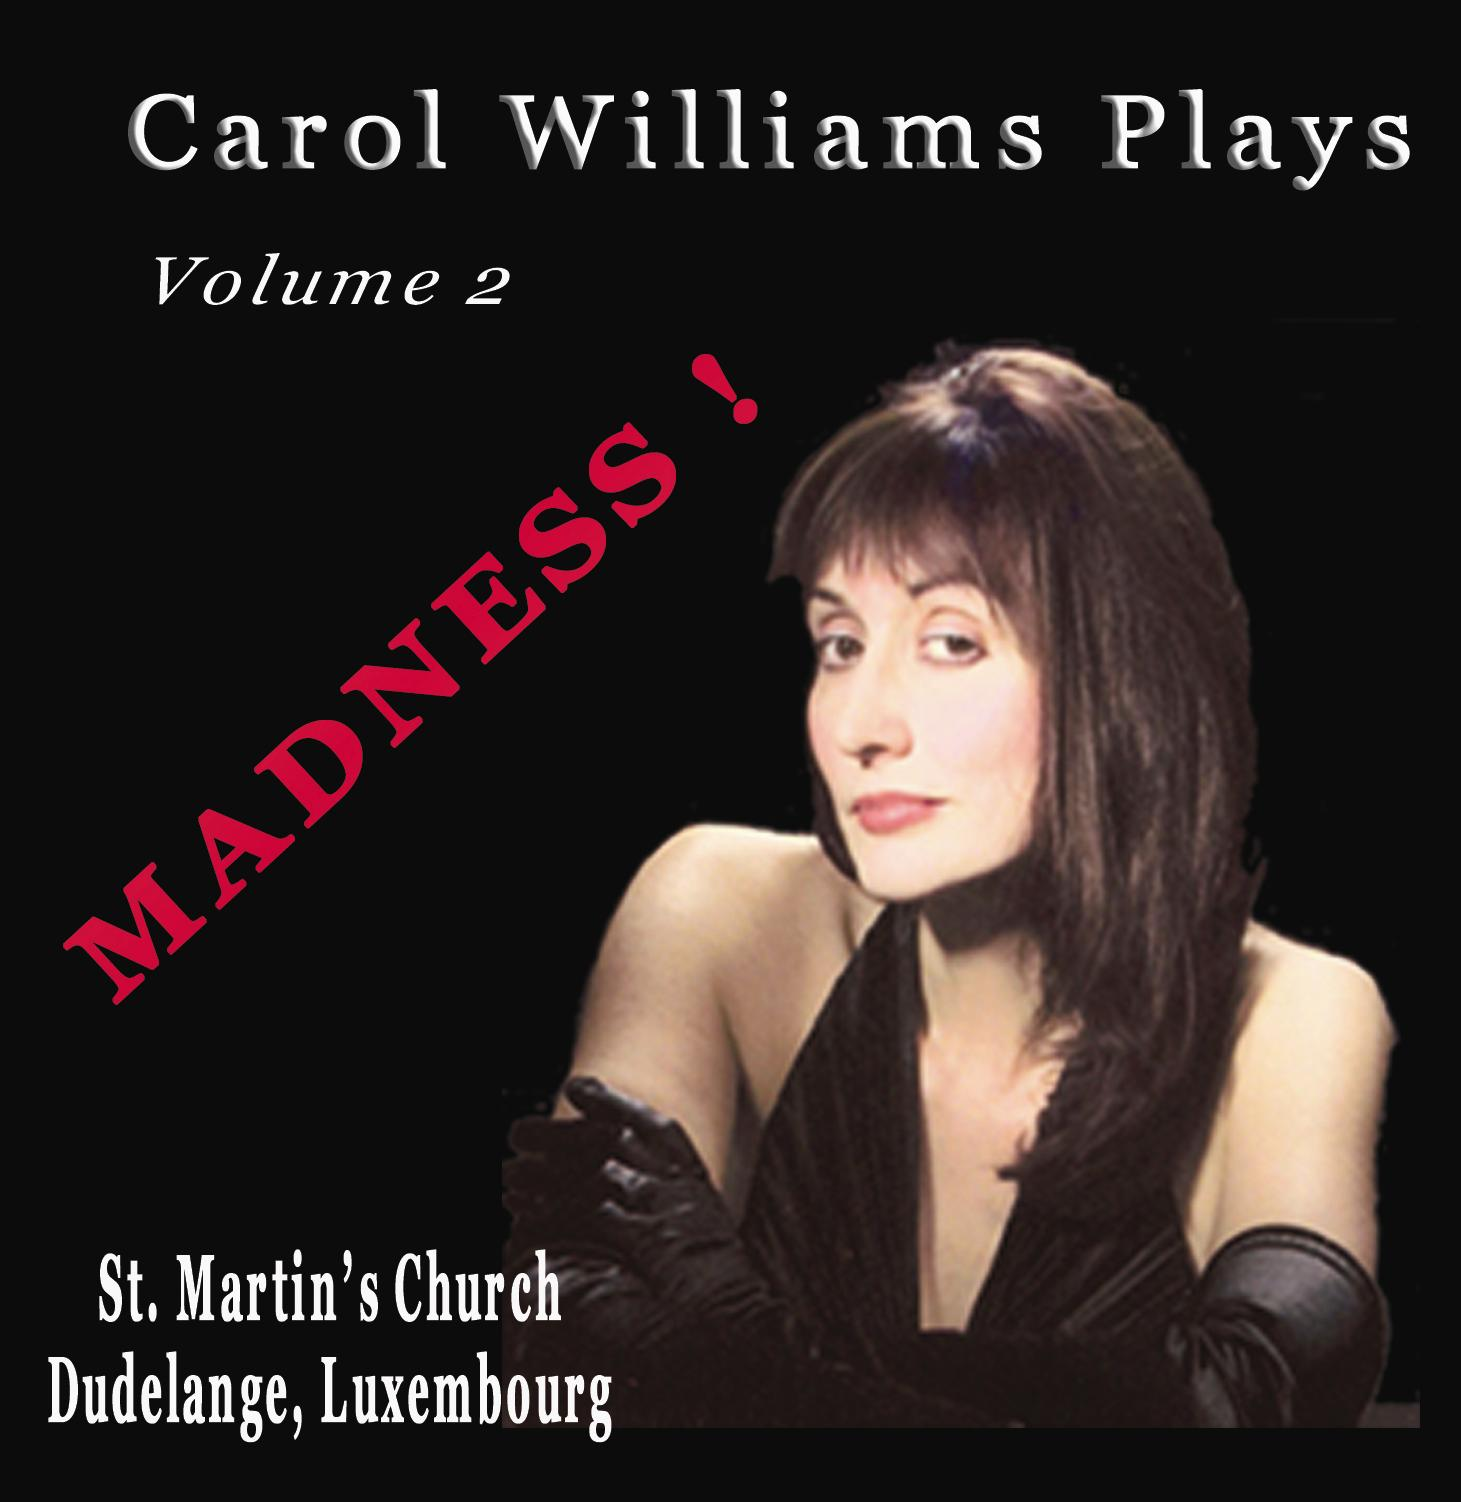 Carol                                 Williams plays Madness